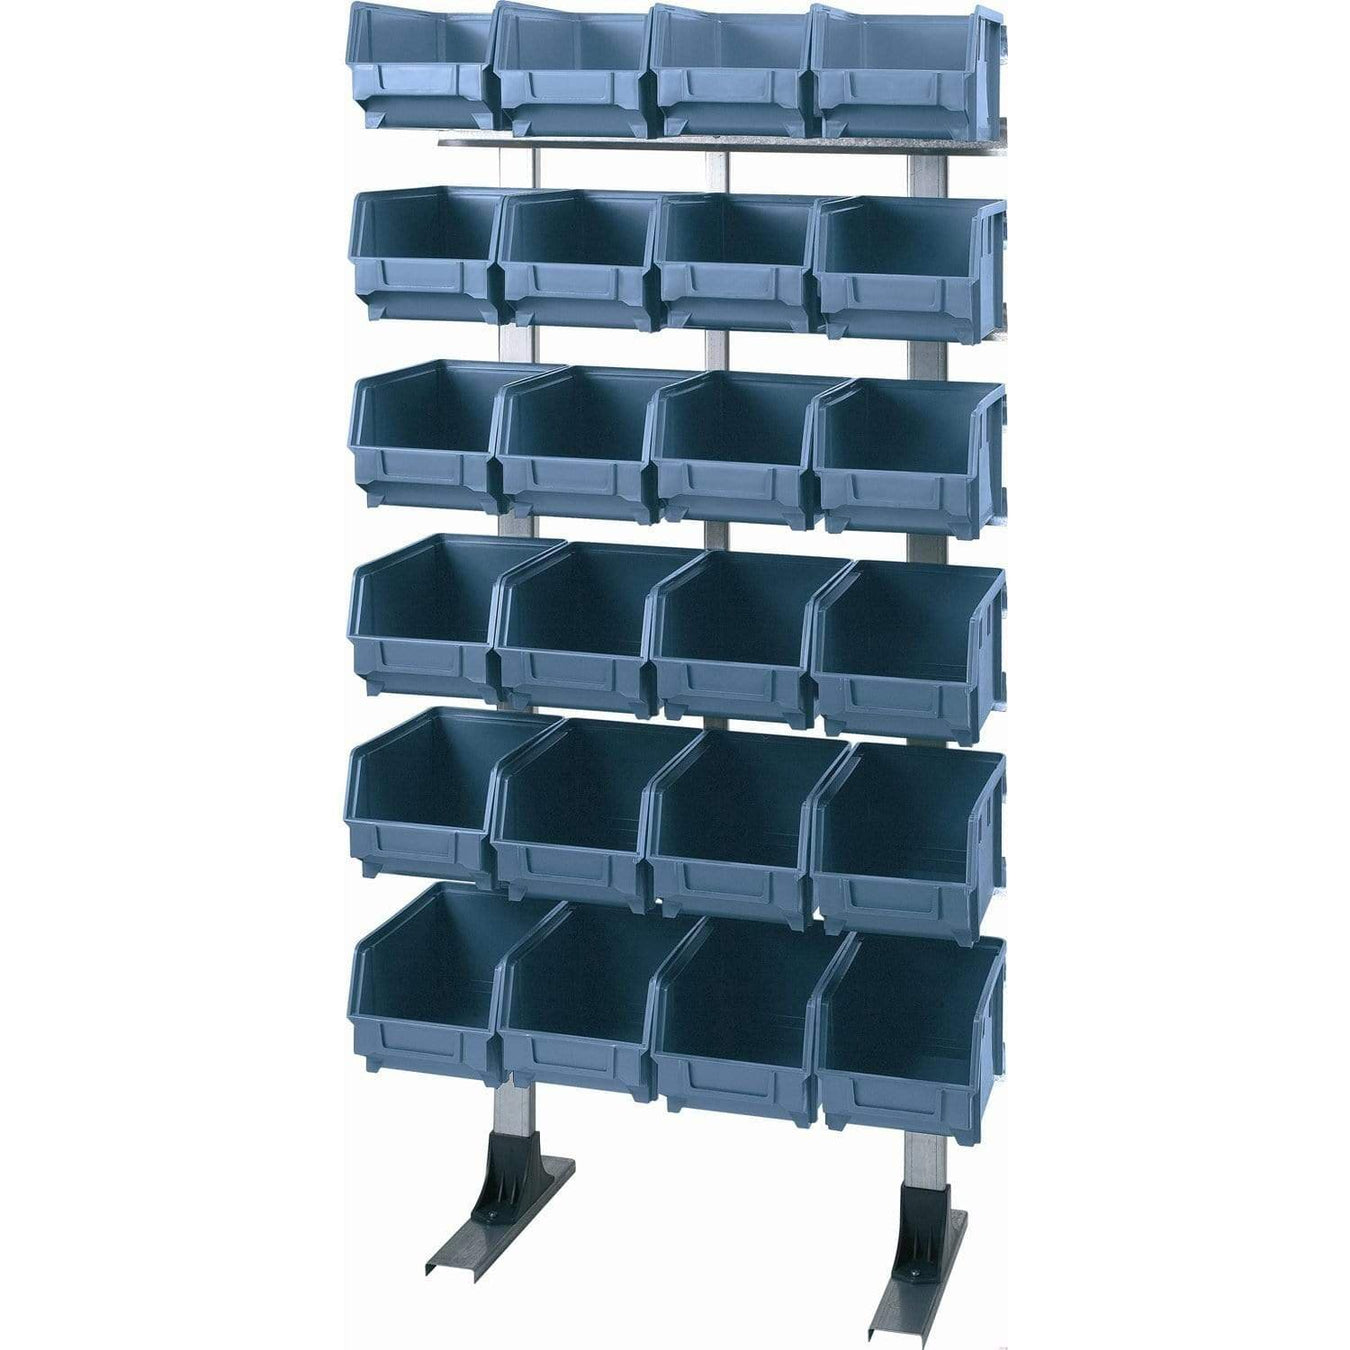 Shelf Unit with Bins